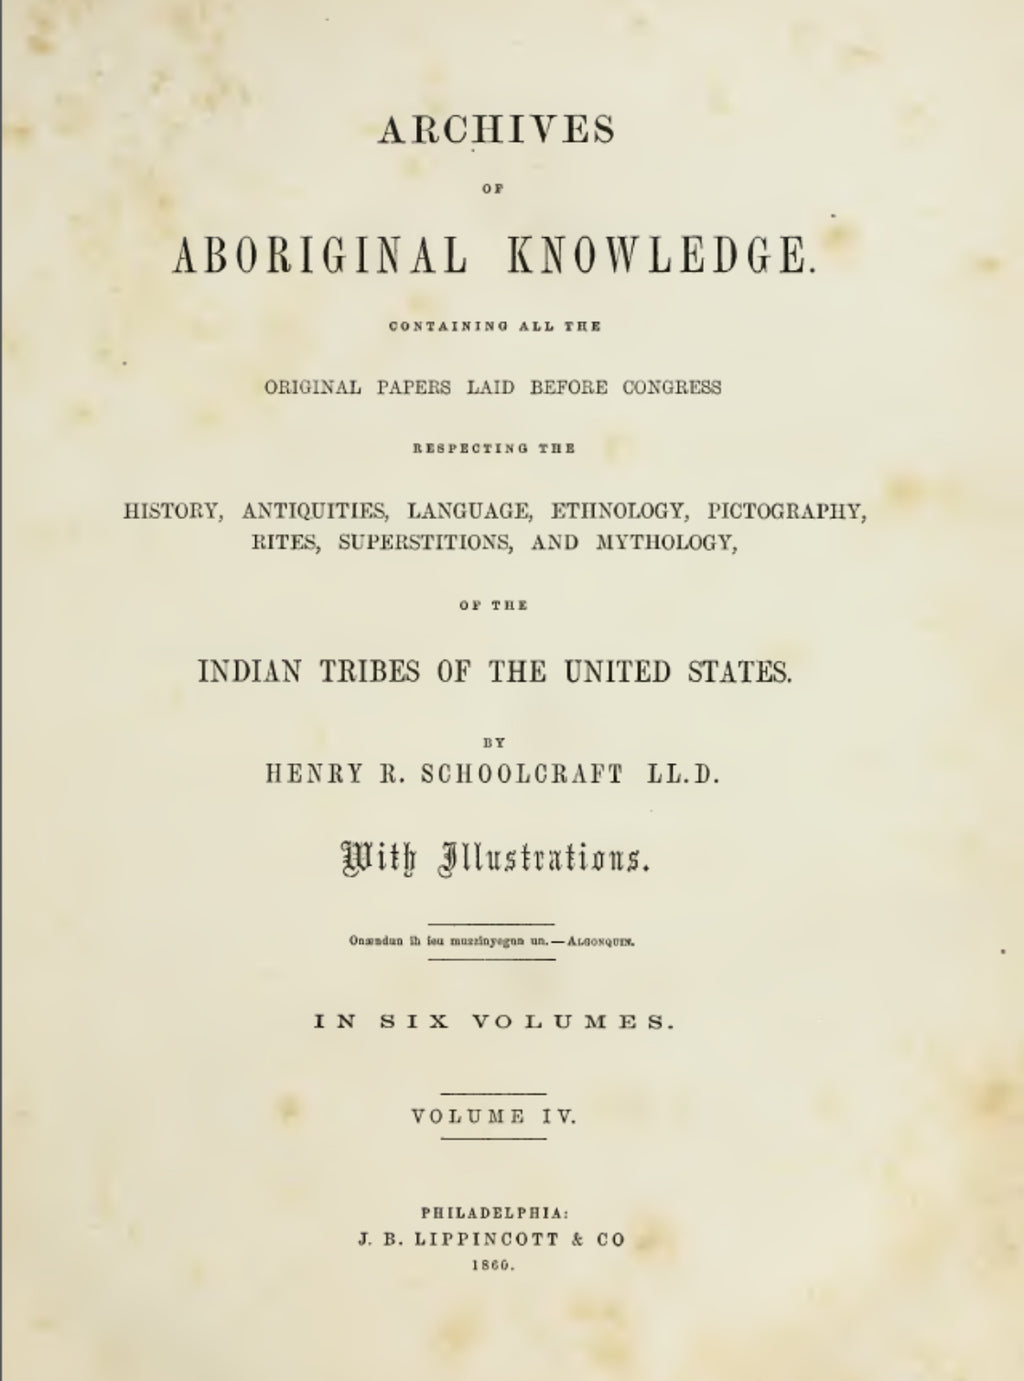 1860 Archives of aboriginal knowledge Vol 4